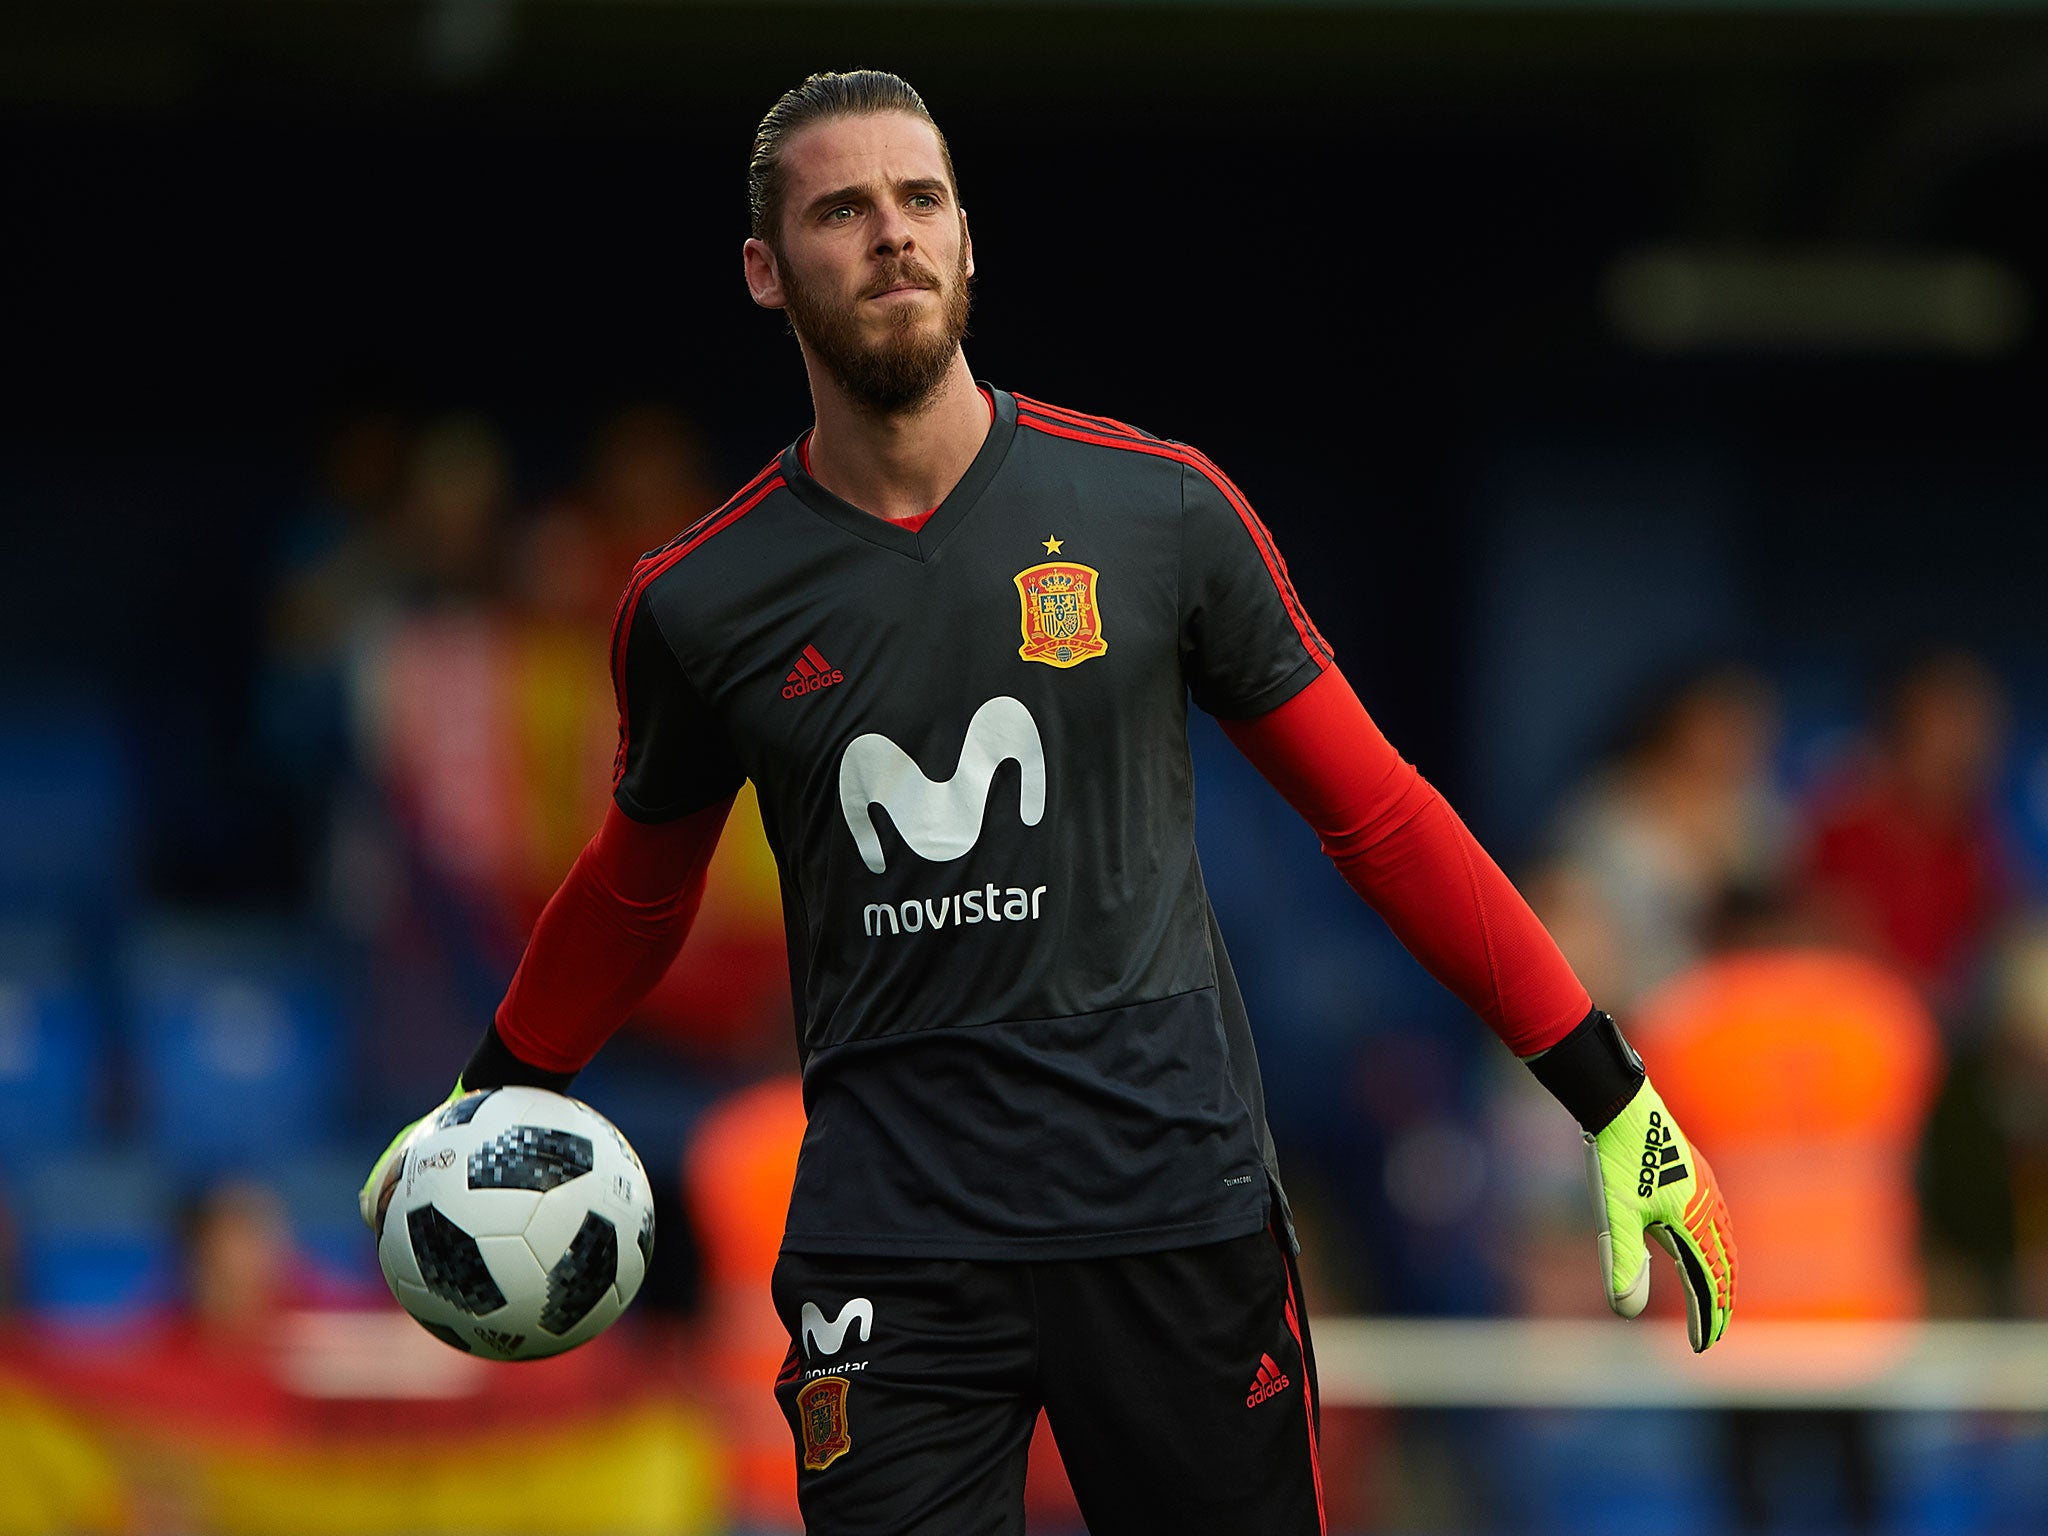 a342568e9 David De Gea refuses to applaud Spanish PM after he criticised goalkeeper  during sexual assault investigation